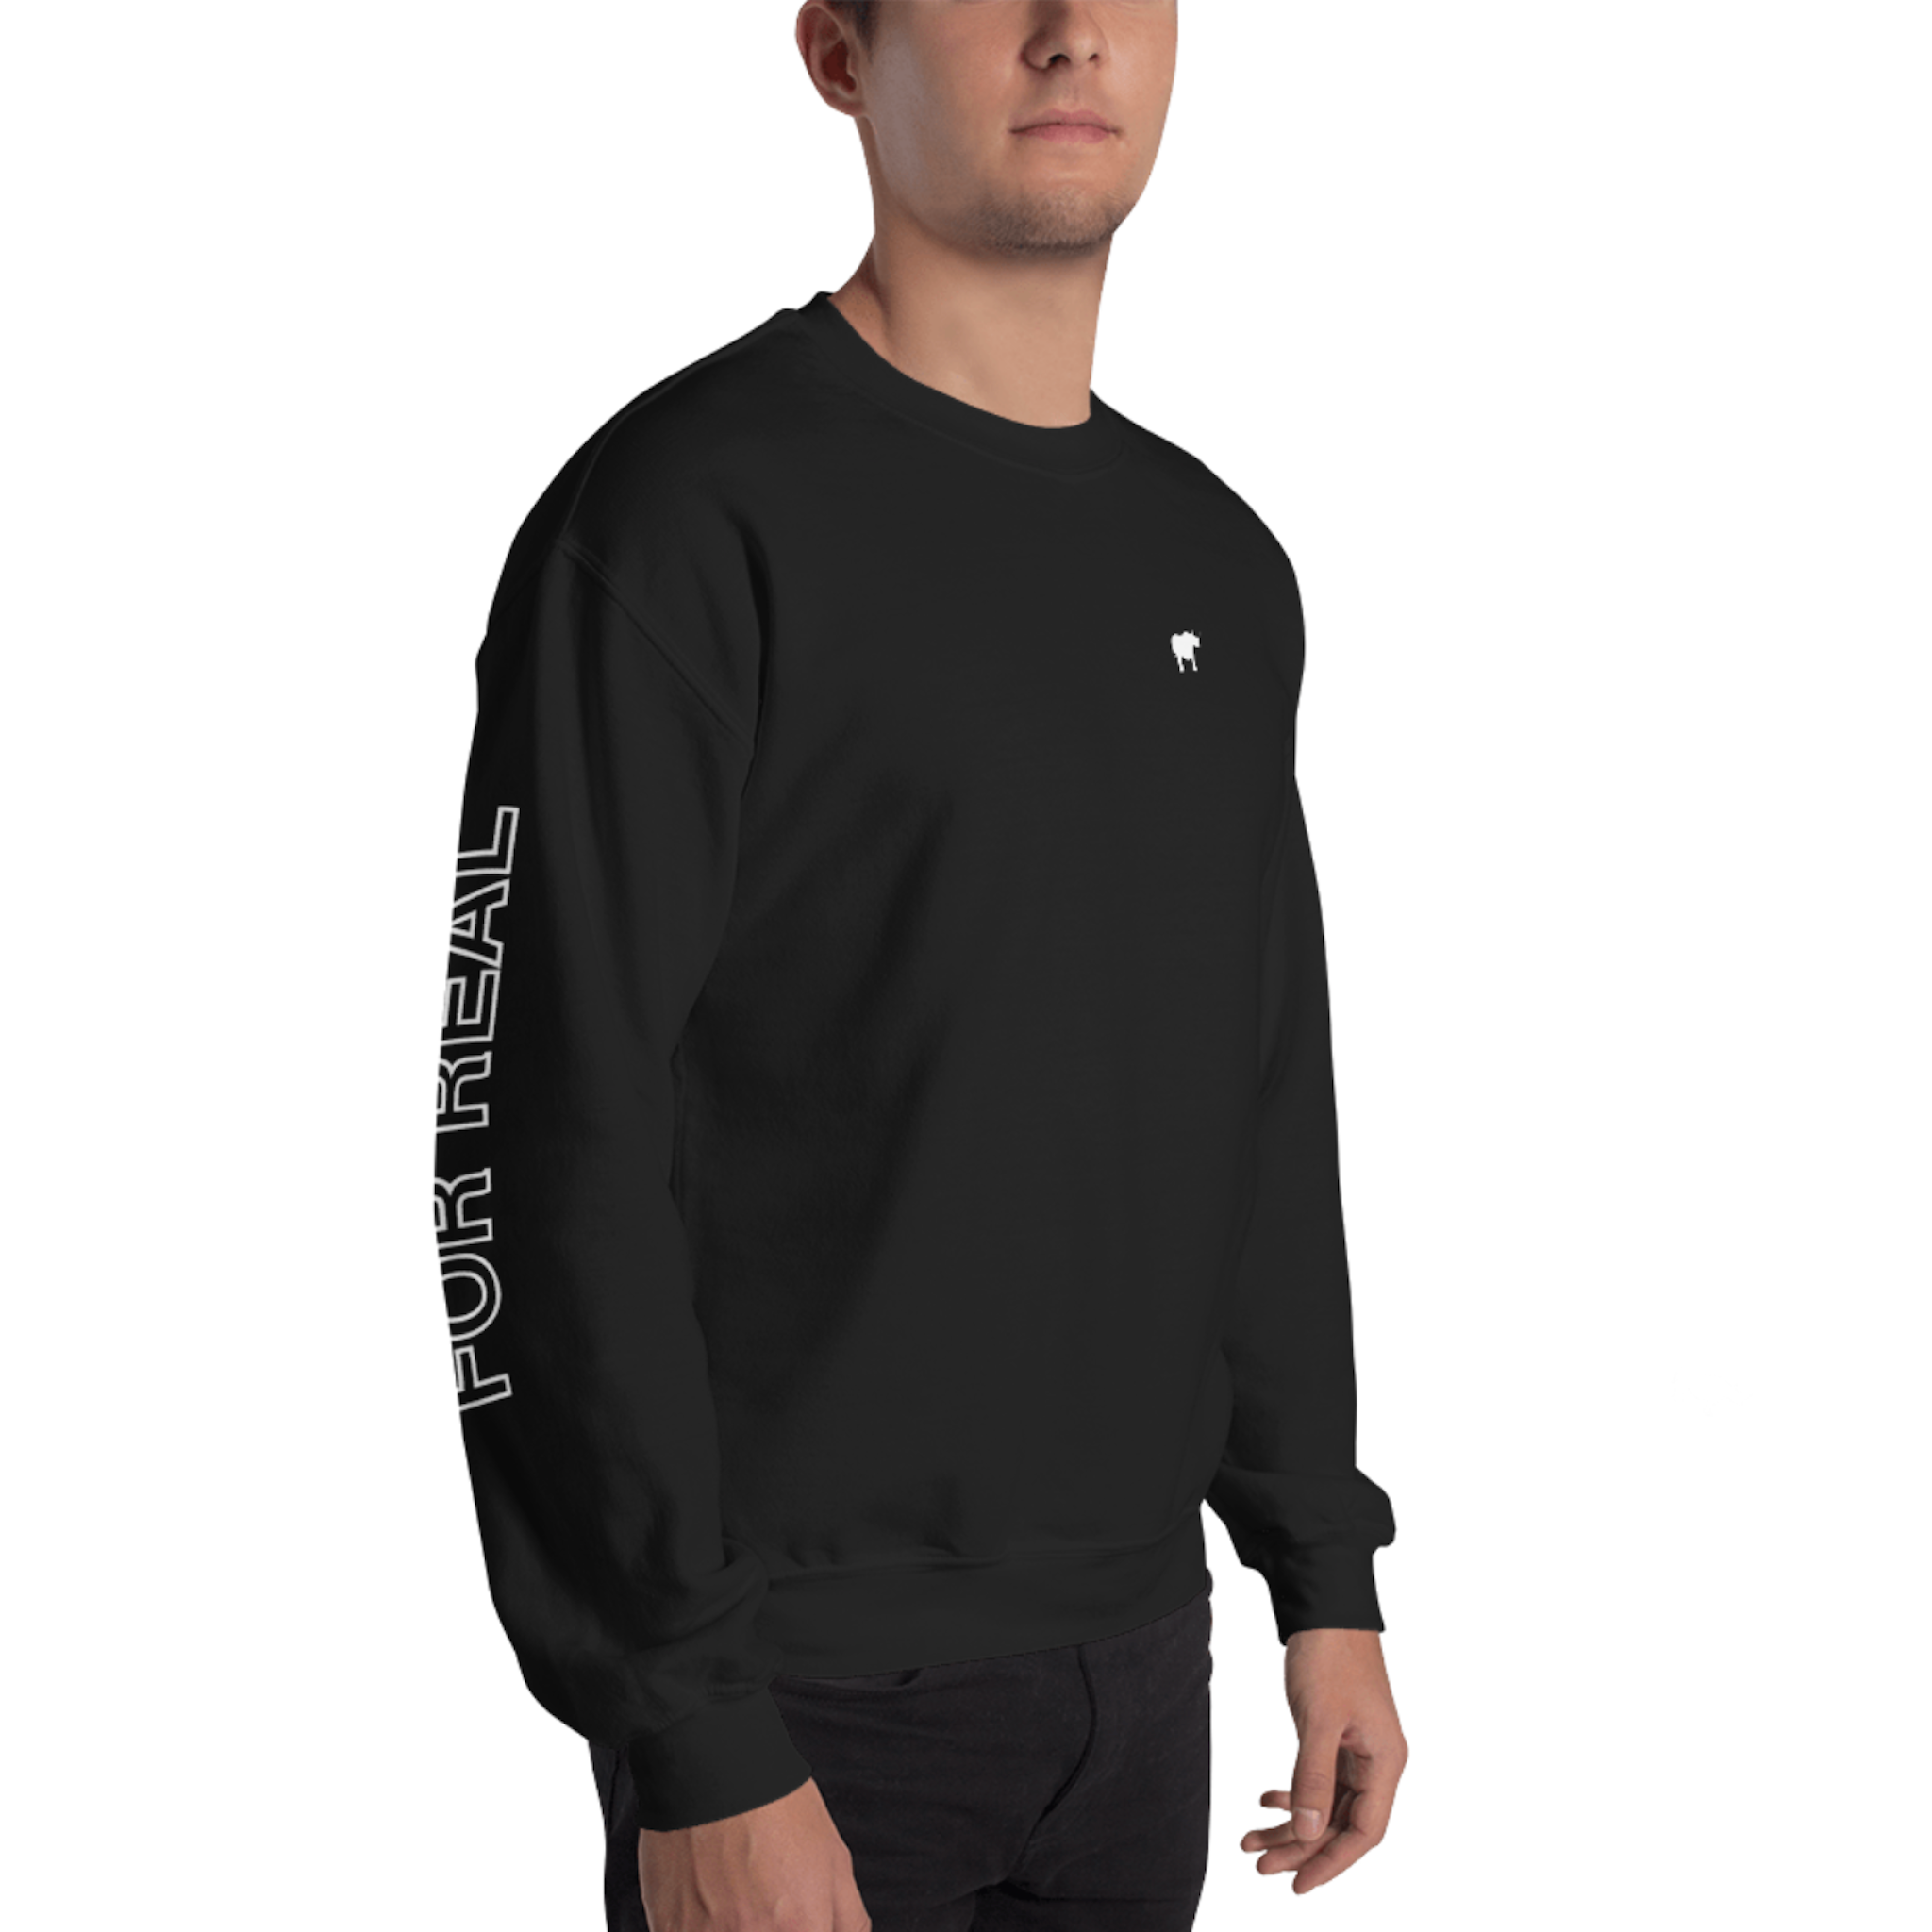 Side sweater black frontright man